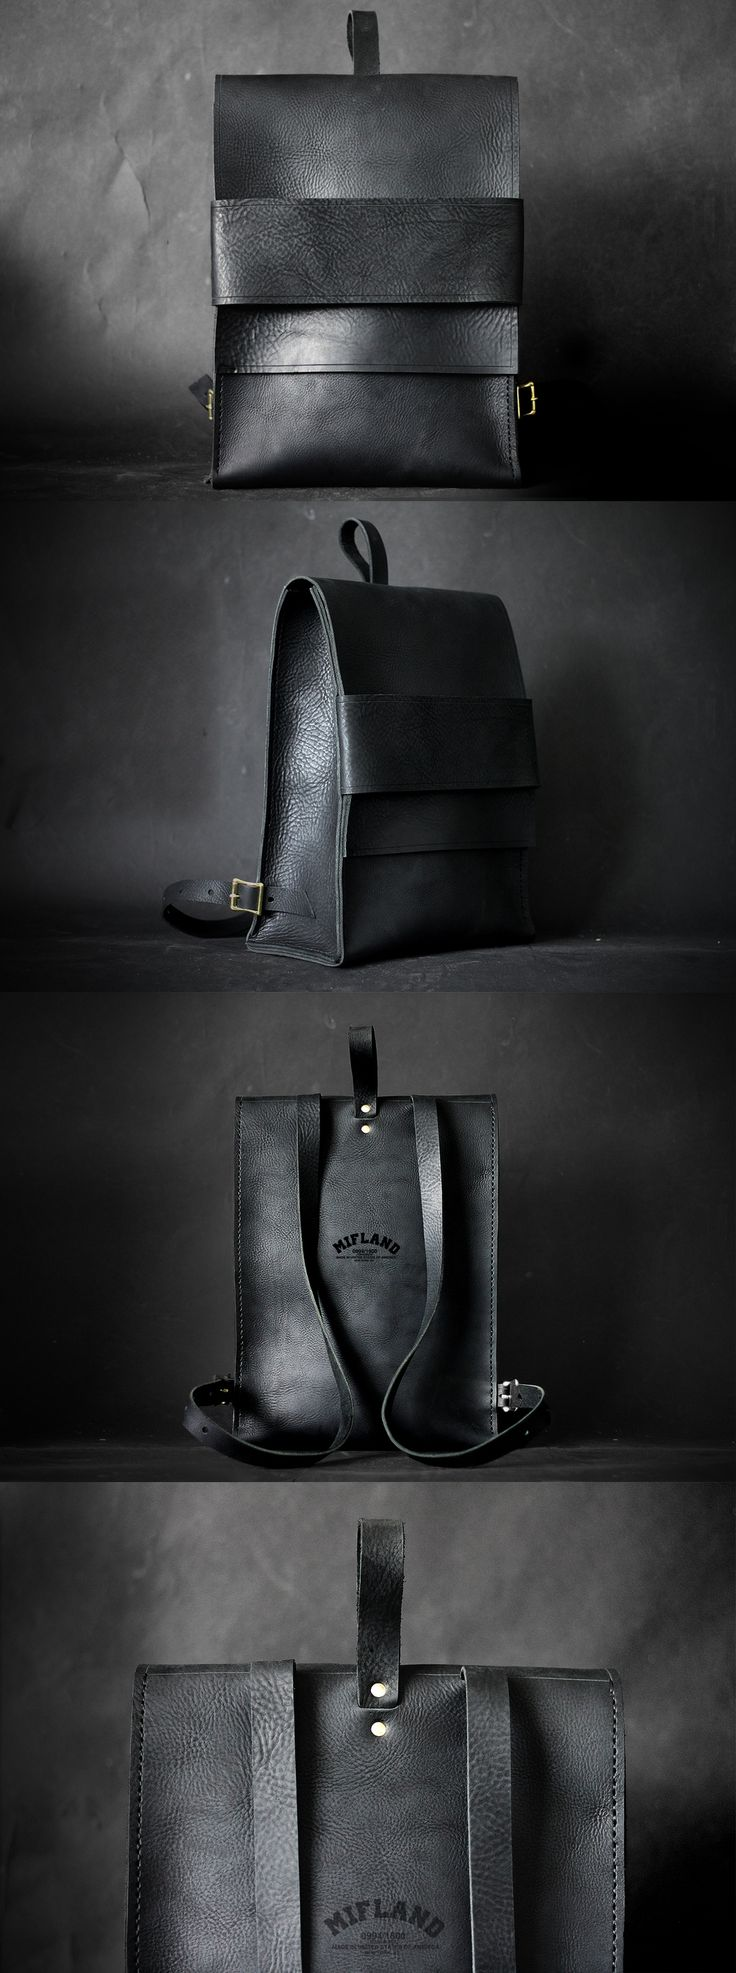 Visibly Interesting: Mifland Concept 1 Rucksack Available @ mifland.com $498 black leather bag